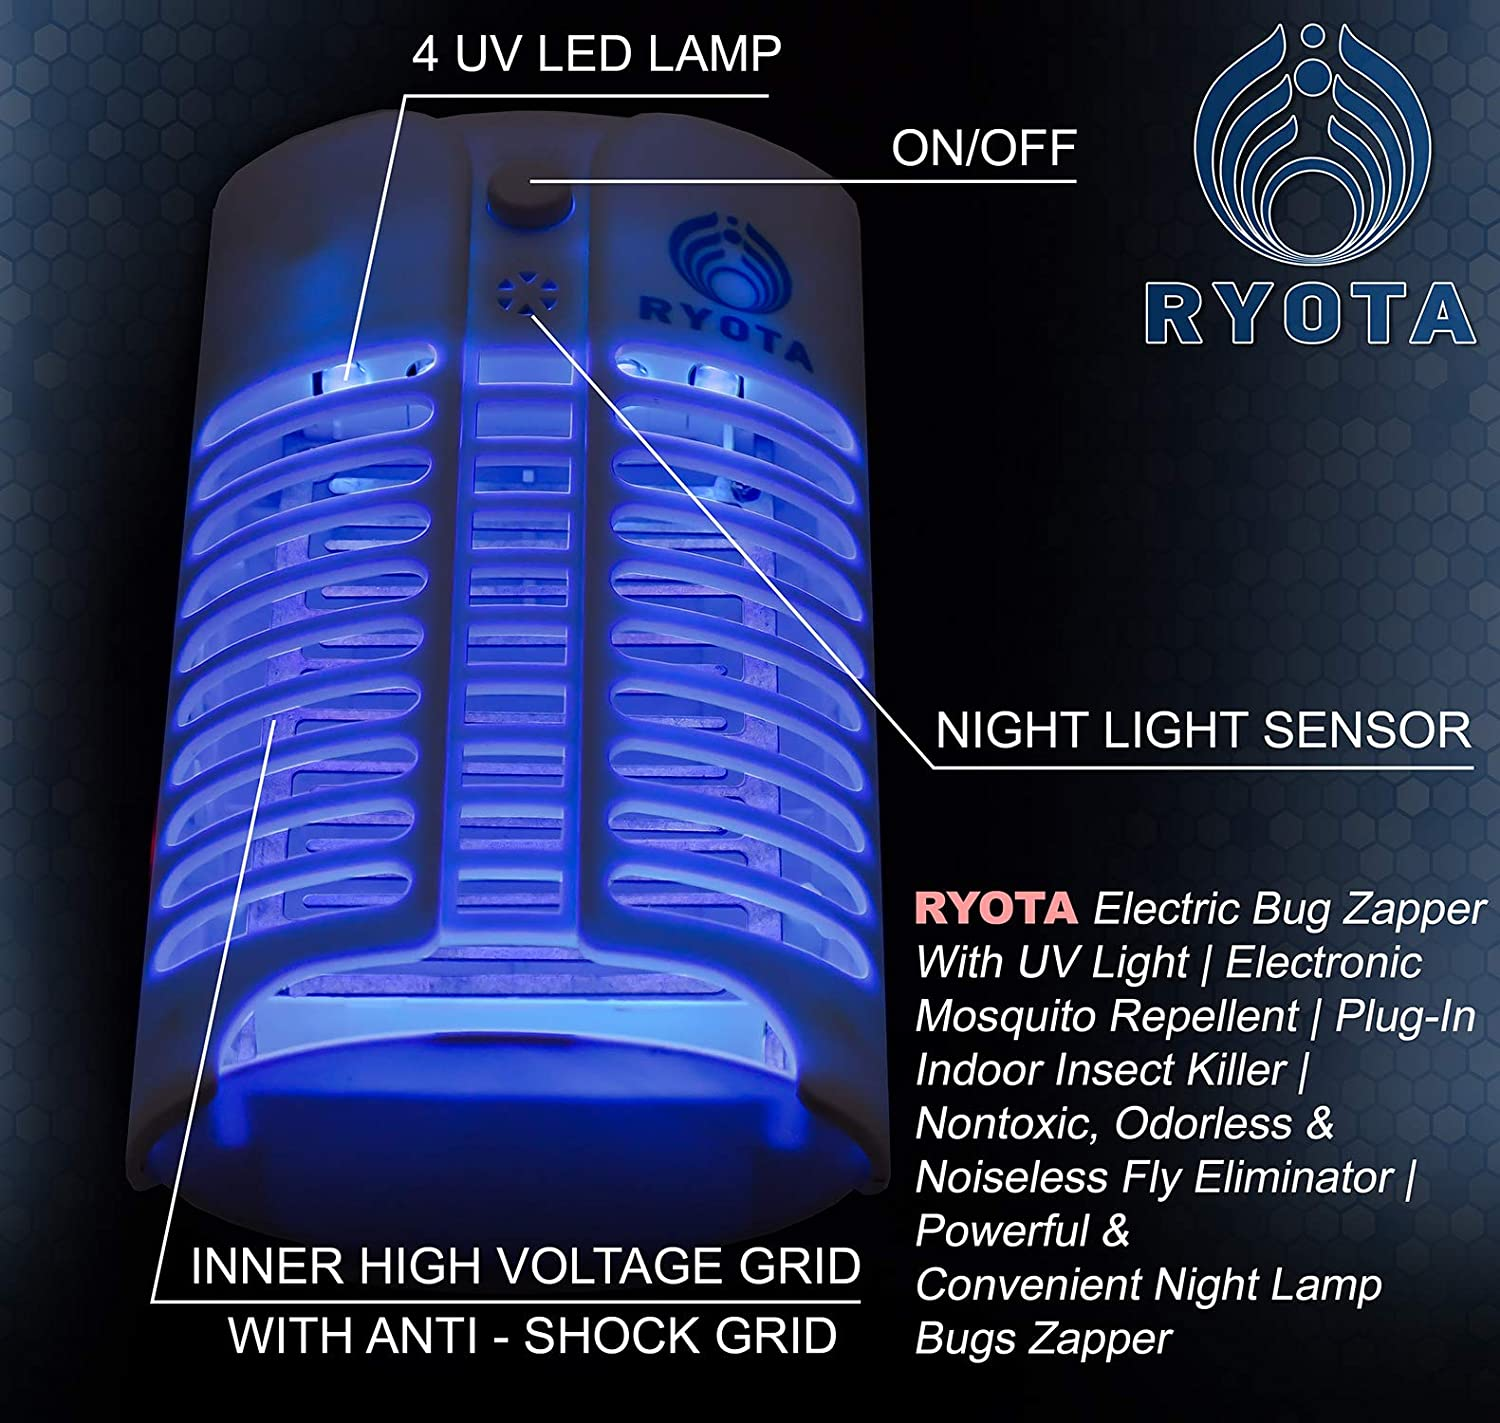 Ryota Electric Bug Zapper With Uv Light Electronic Mosquito Repeller Insect And Kit Repellent Plug In Indoor Killer Nontoxic Odorless Noiseless Fly